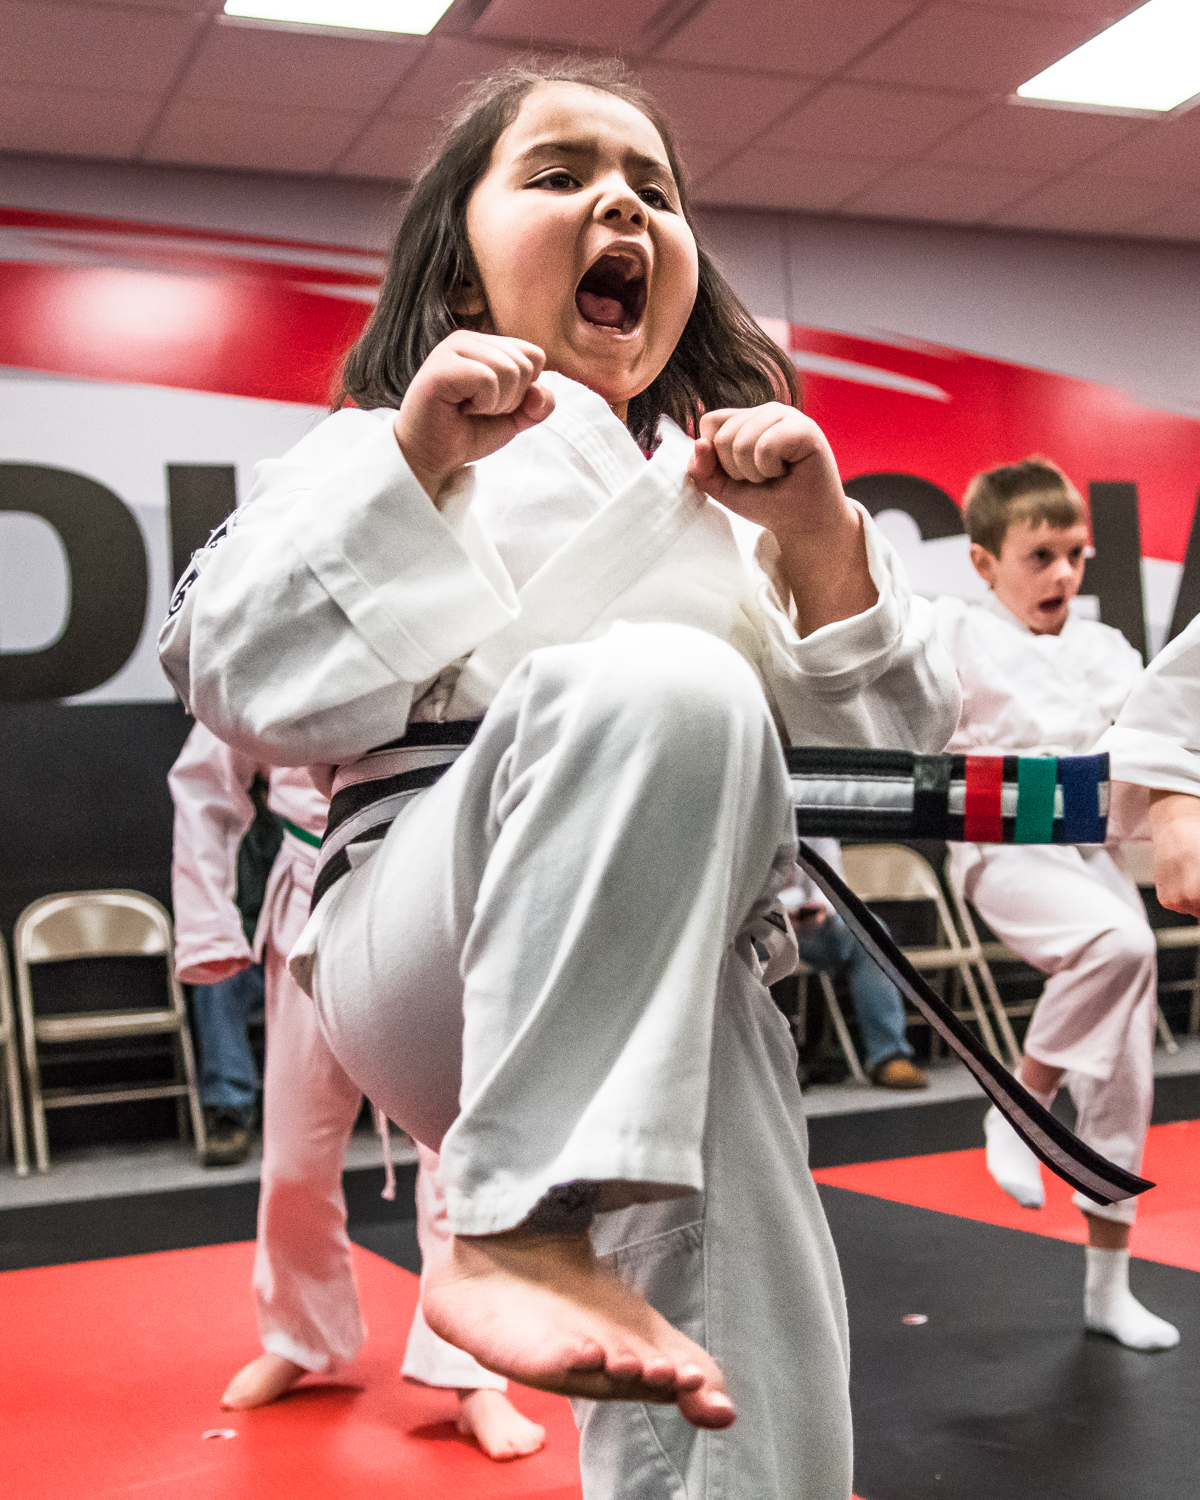 Natalia Padilla, 6, practices her kneeing along with her Little Dragons karate class at Black Belt Karate in downtown Racine Friday night.